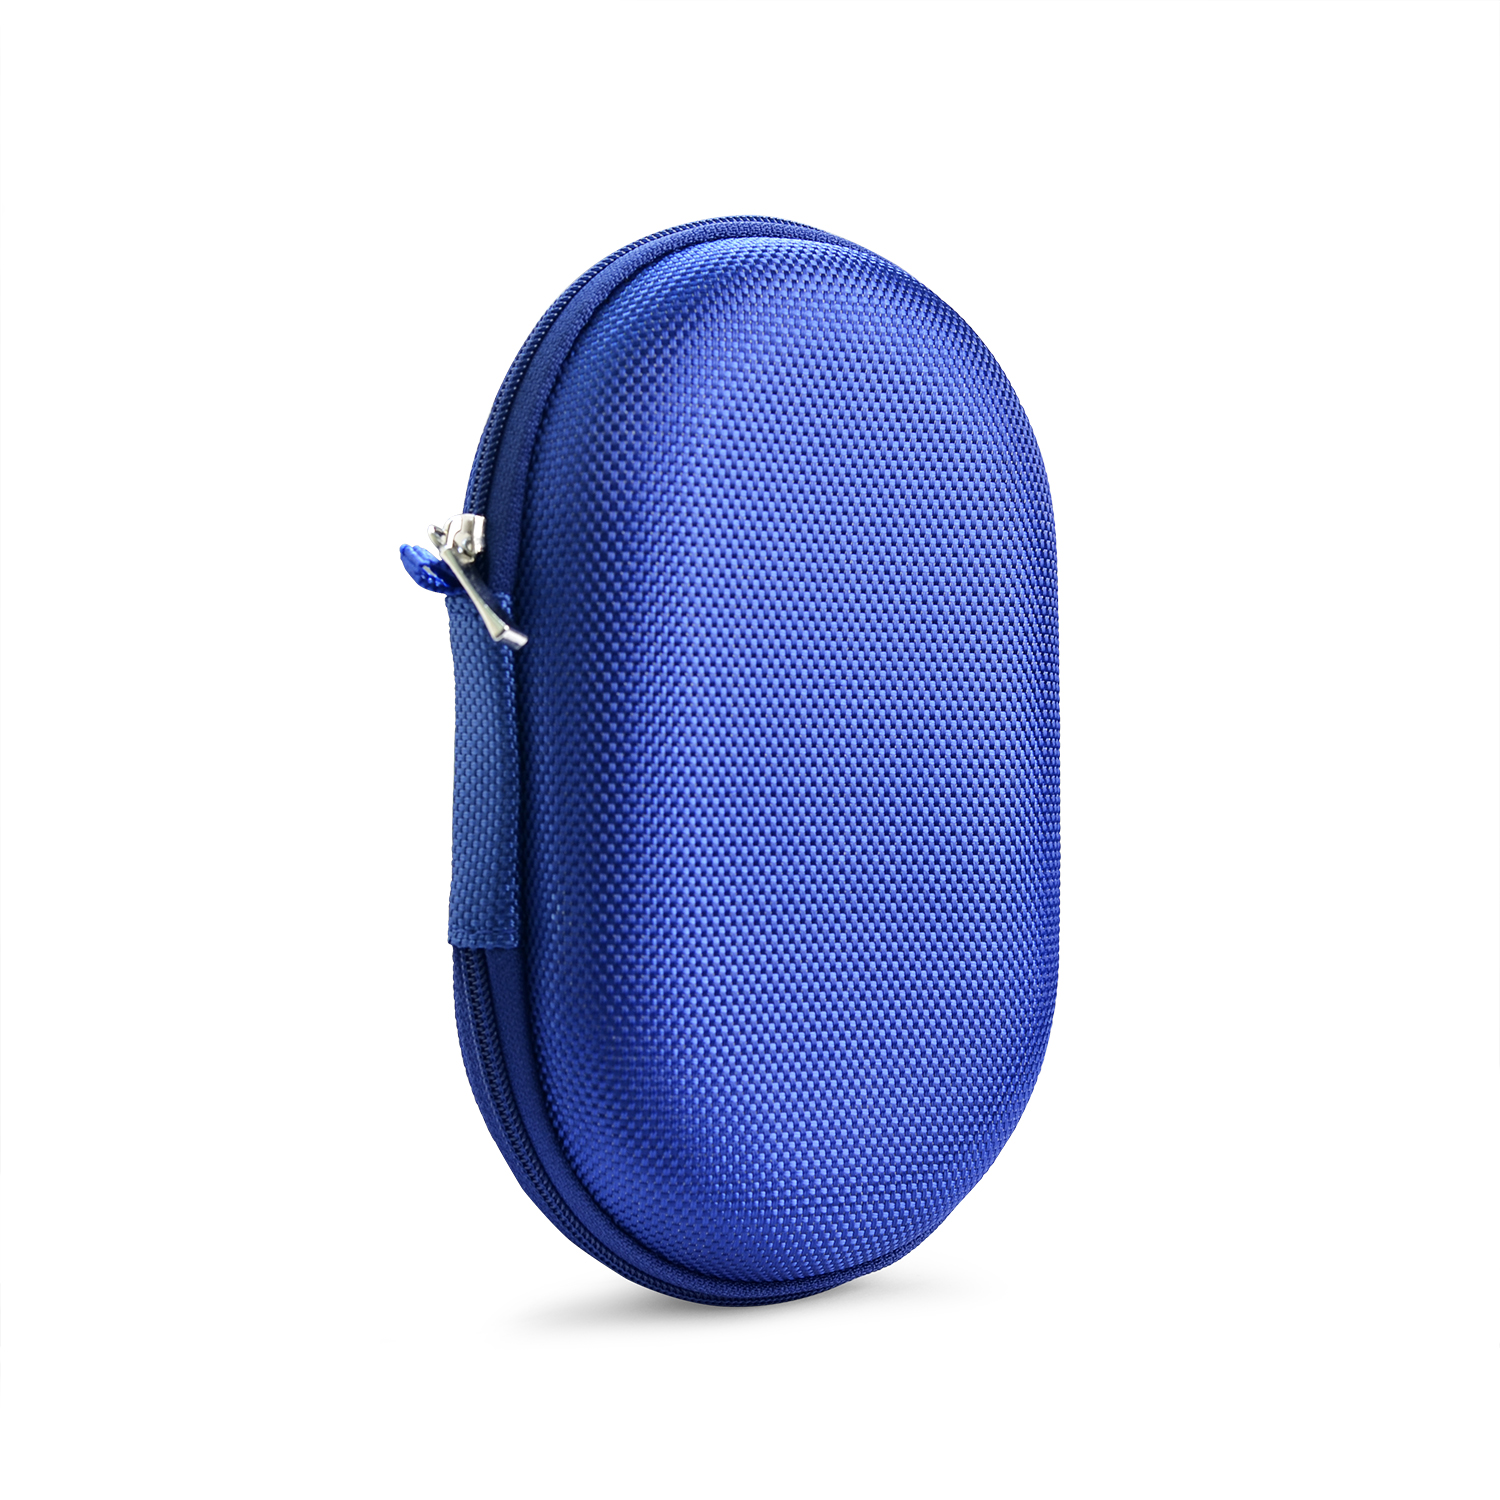 Portable Travel Case fits AmazonBasics Wireless Mouse Receiver  blue